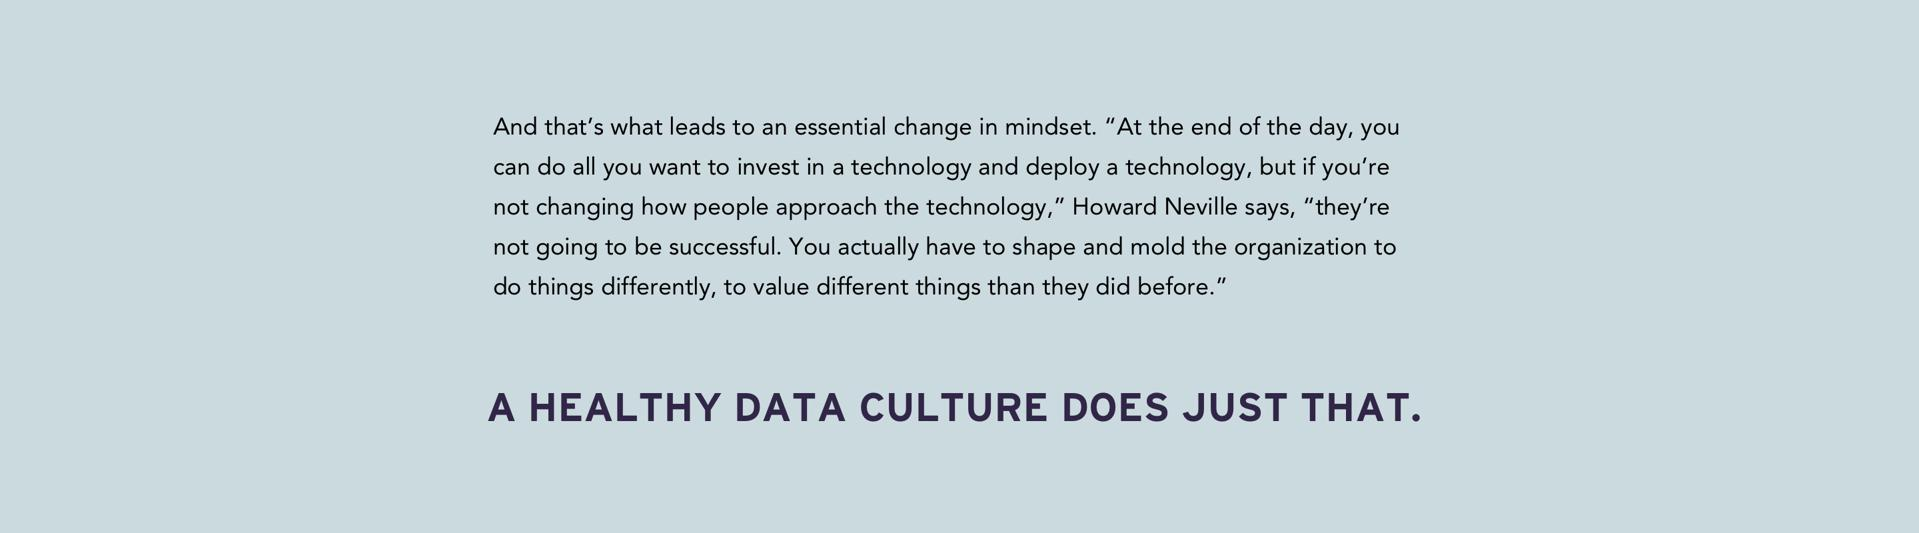 you have to shape and mold the organization to do differently A healthy data culture does just that